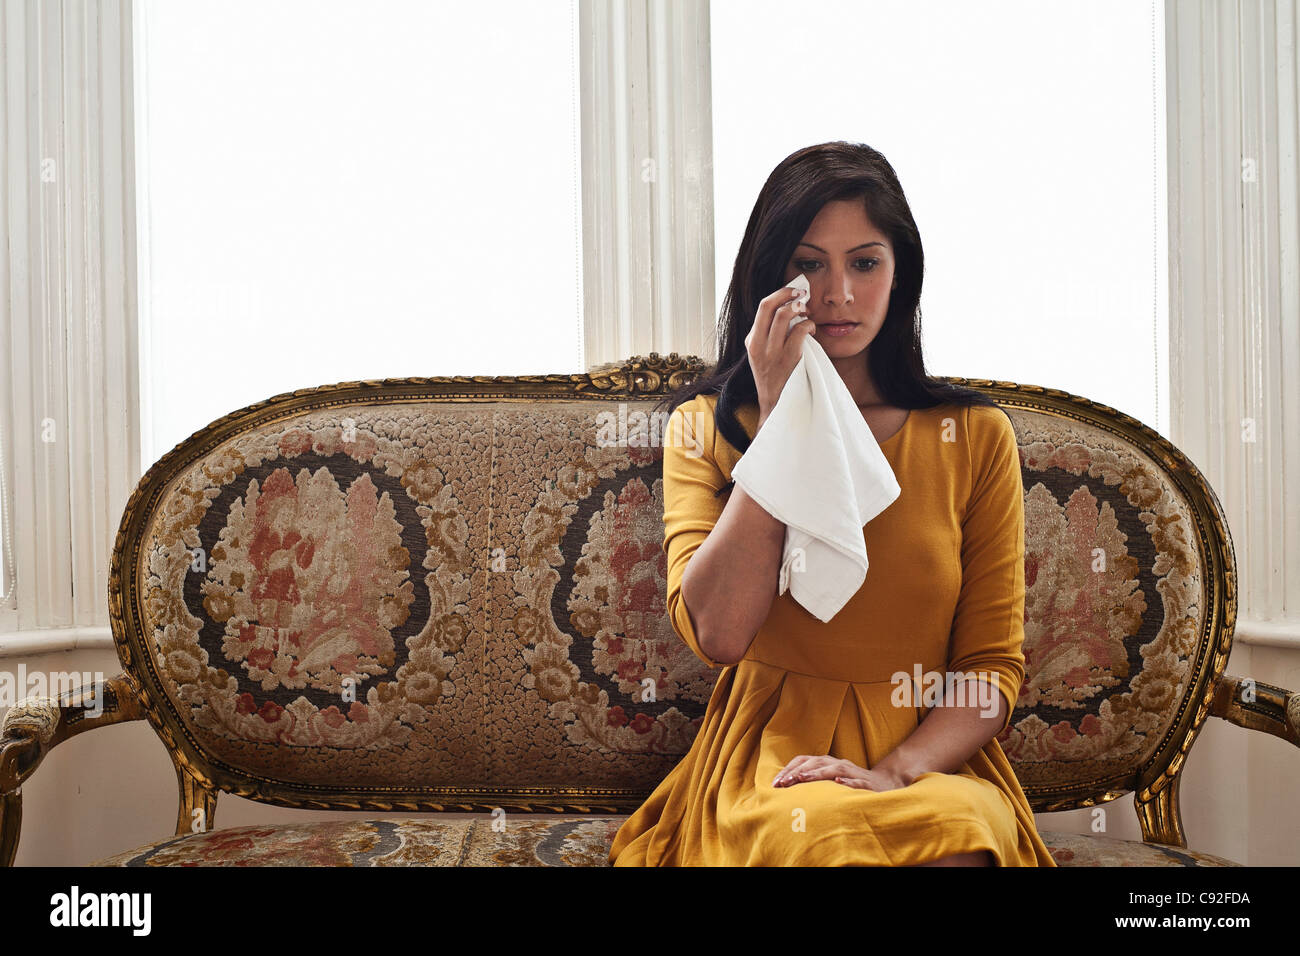 Woman wiping her eyes on sofa - Stock Image